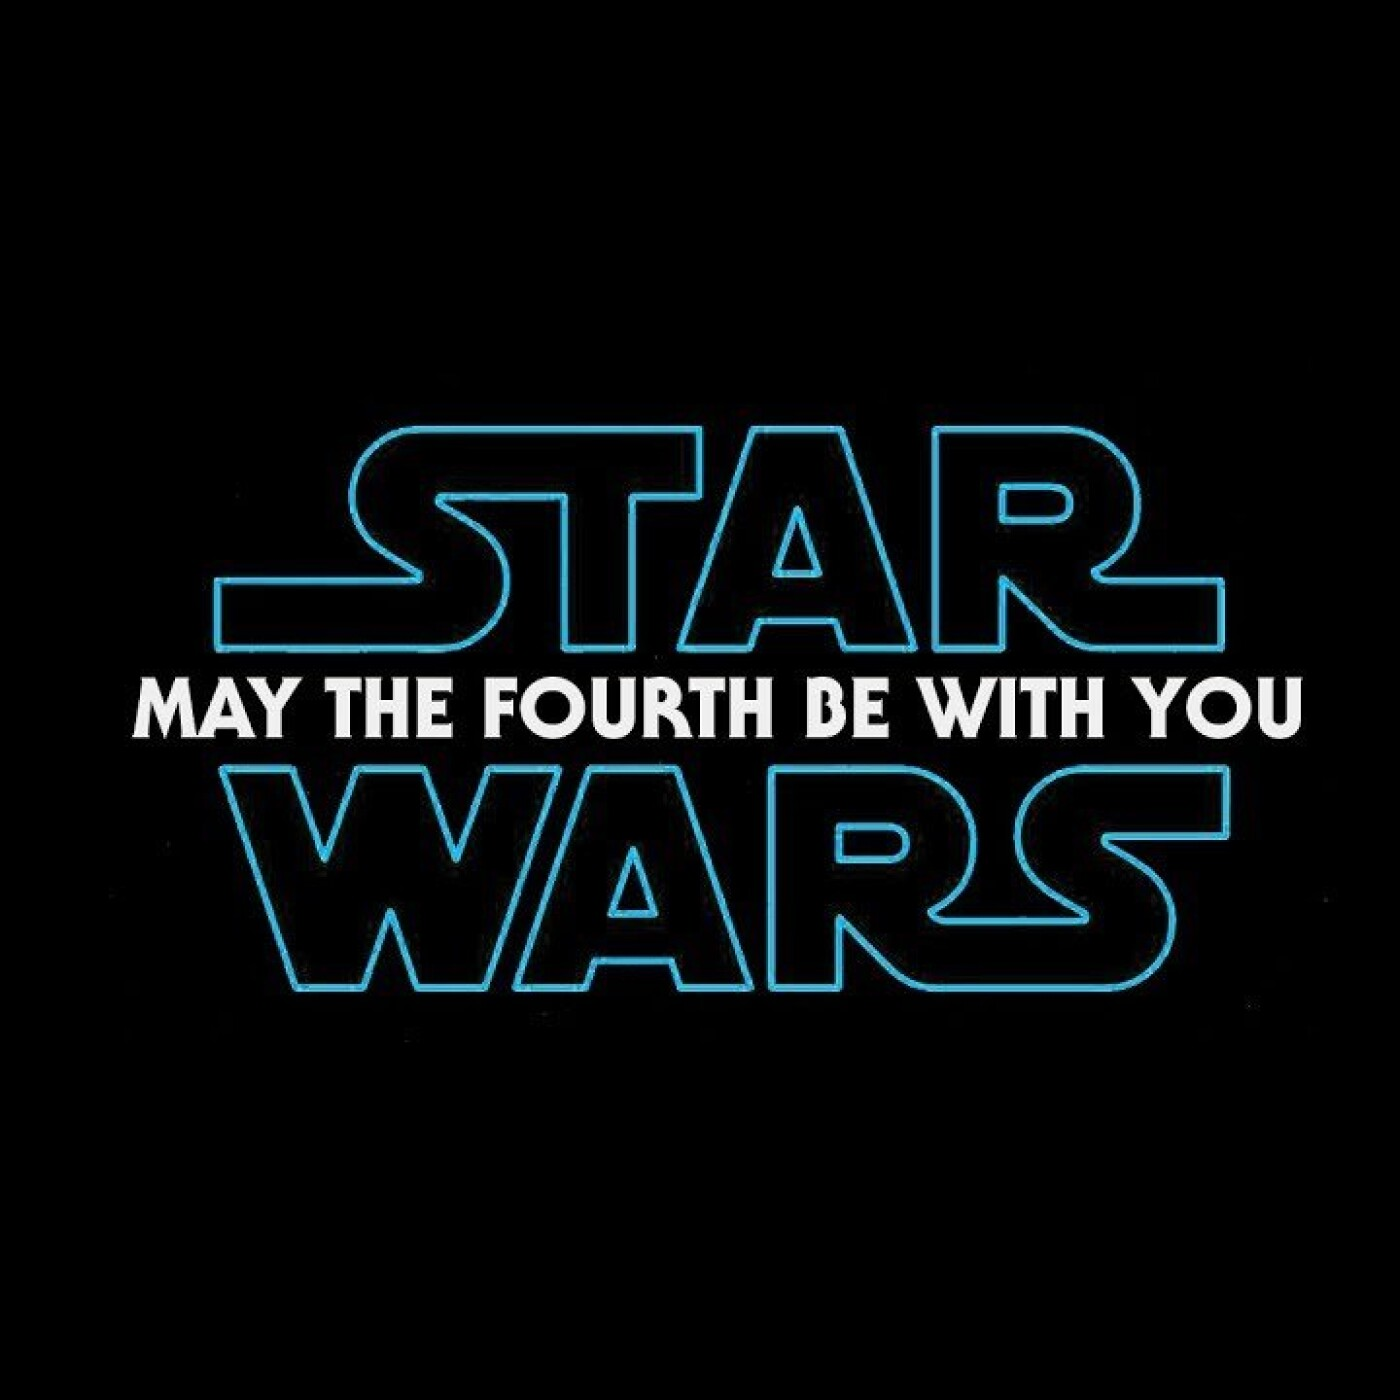 May the force be with you - 04 05 21 - StereoChic Radio